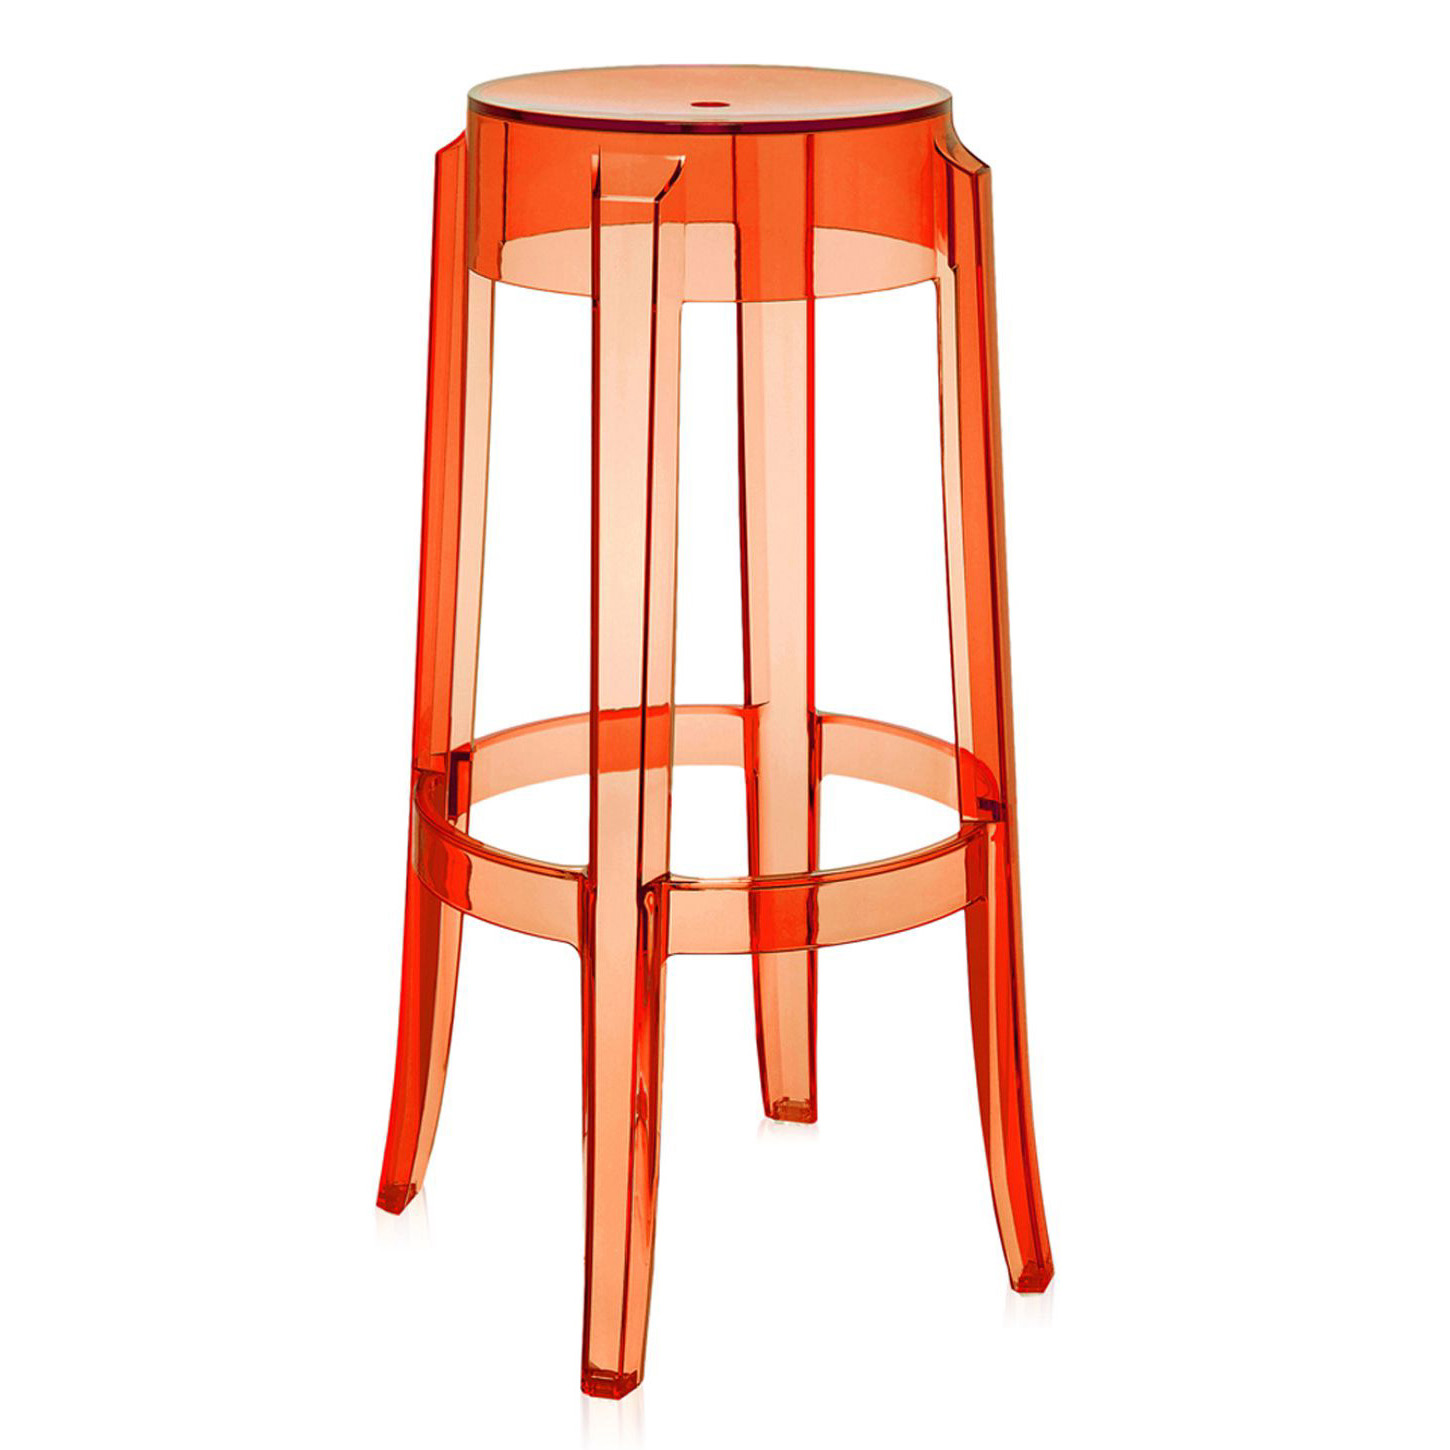 Charles Ghost High Bar Stool by Philippe Starck 7 Colours